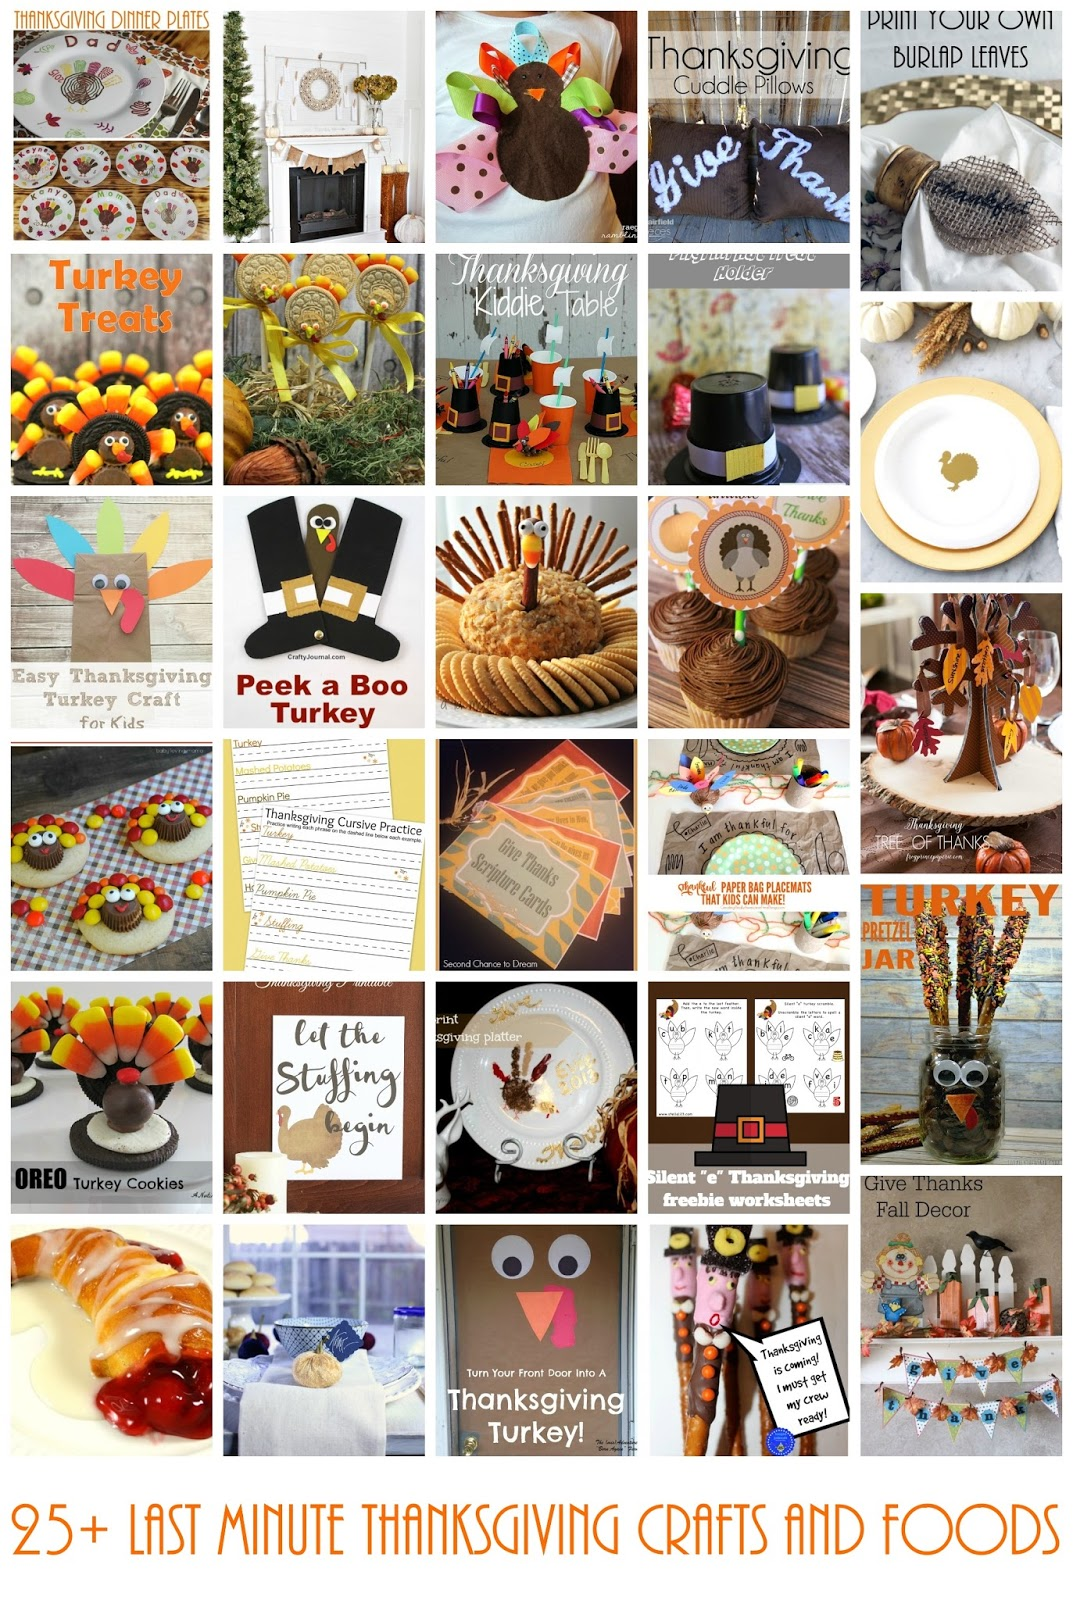 25 Last Minute Thanksgiving Crafts And Foods And Block